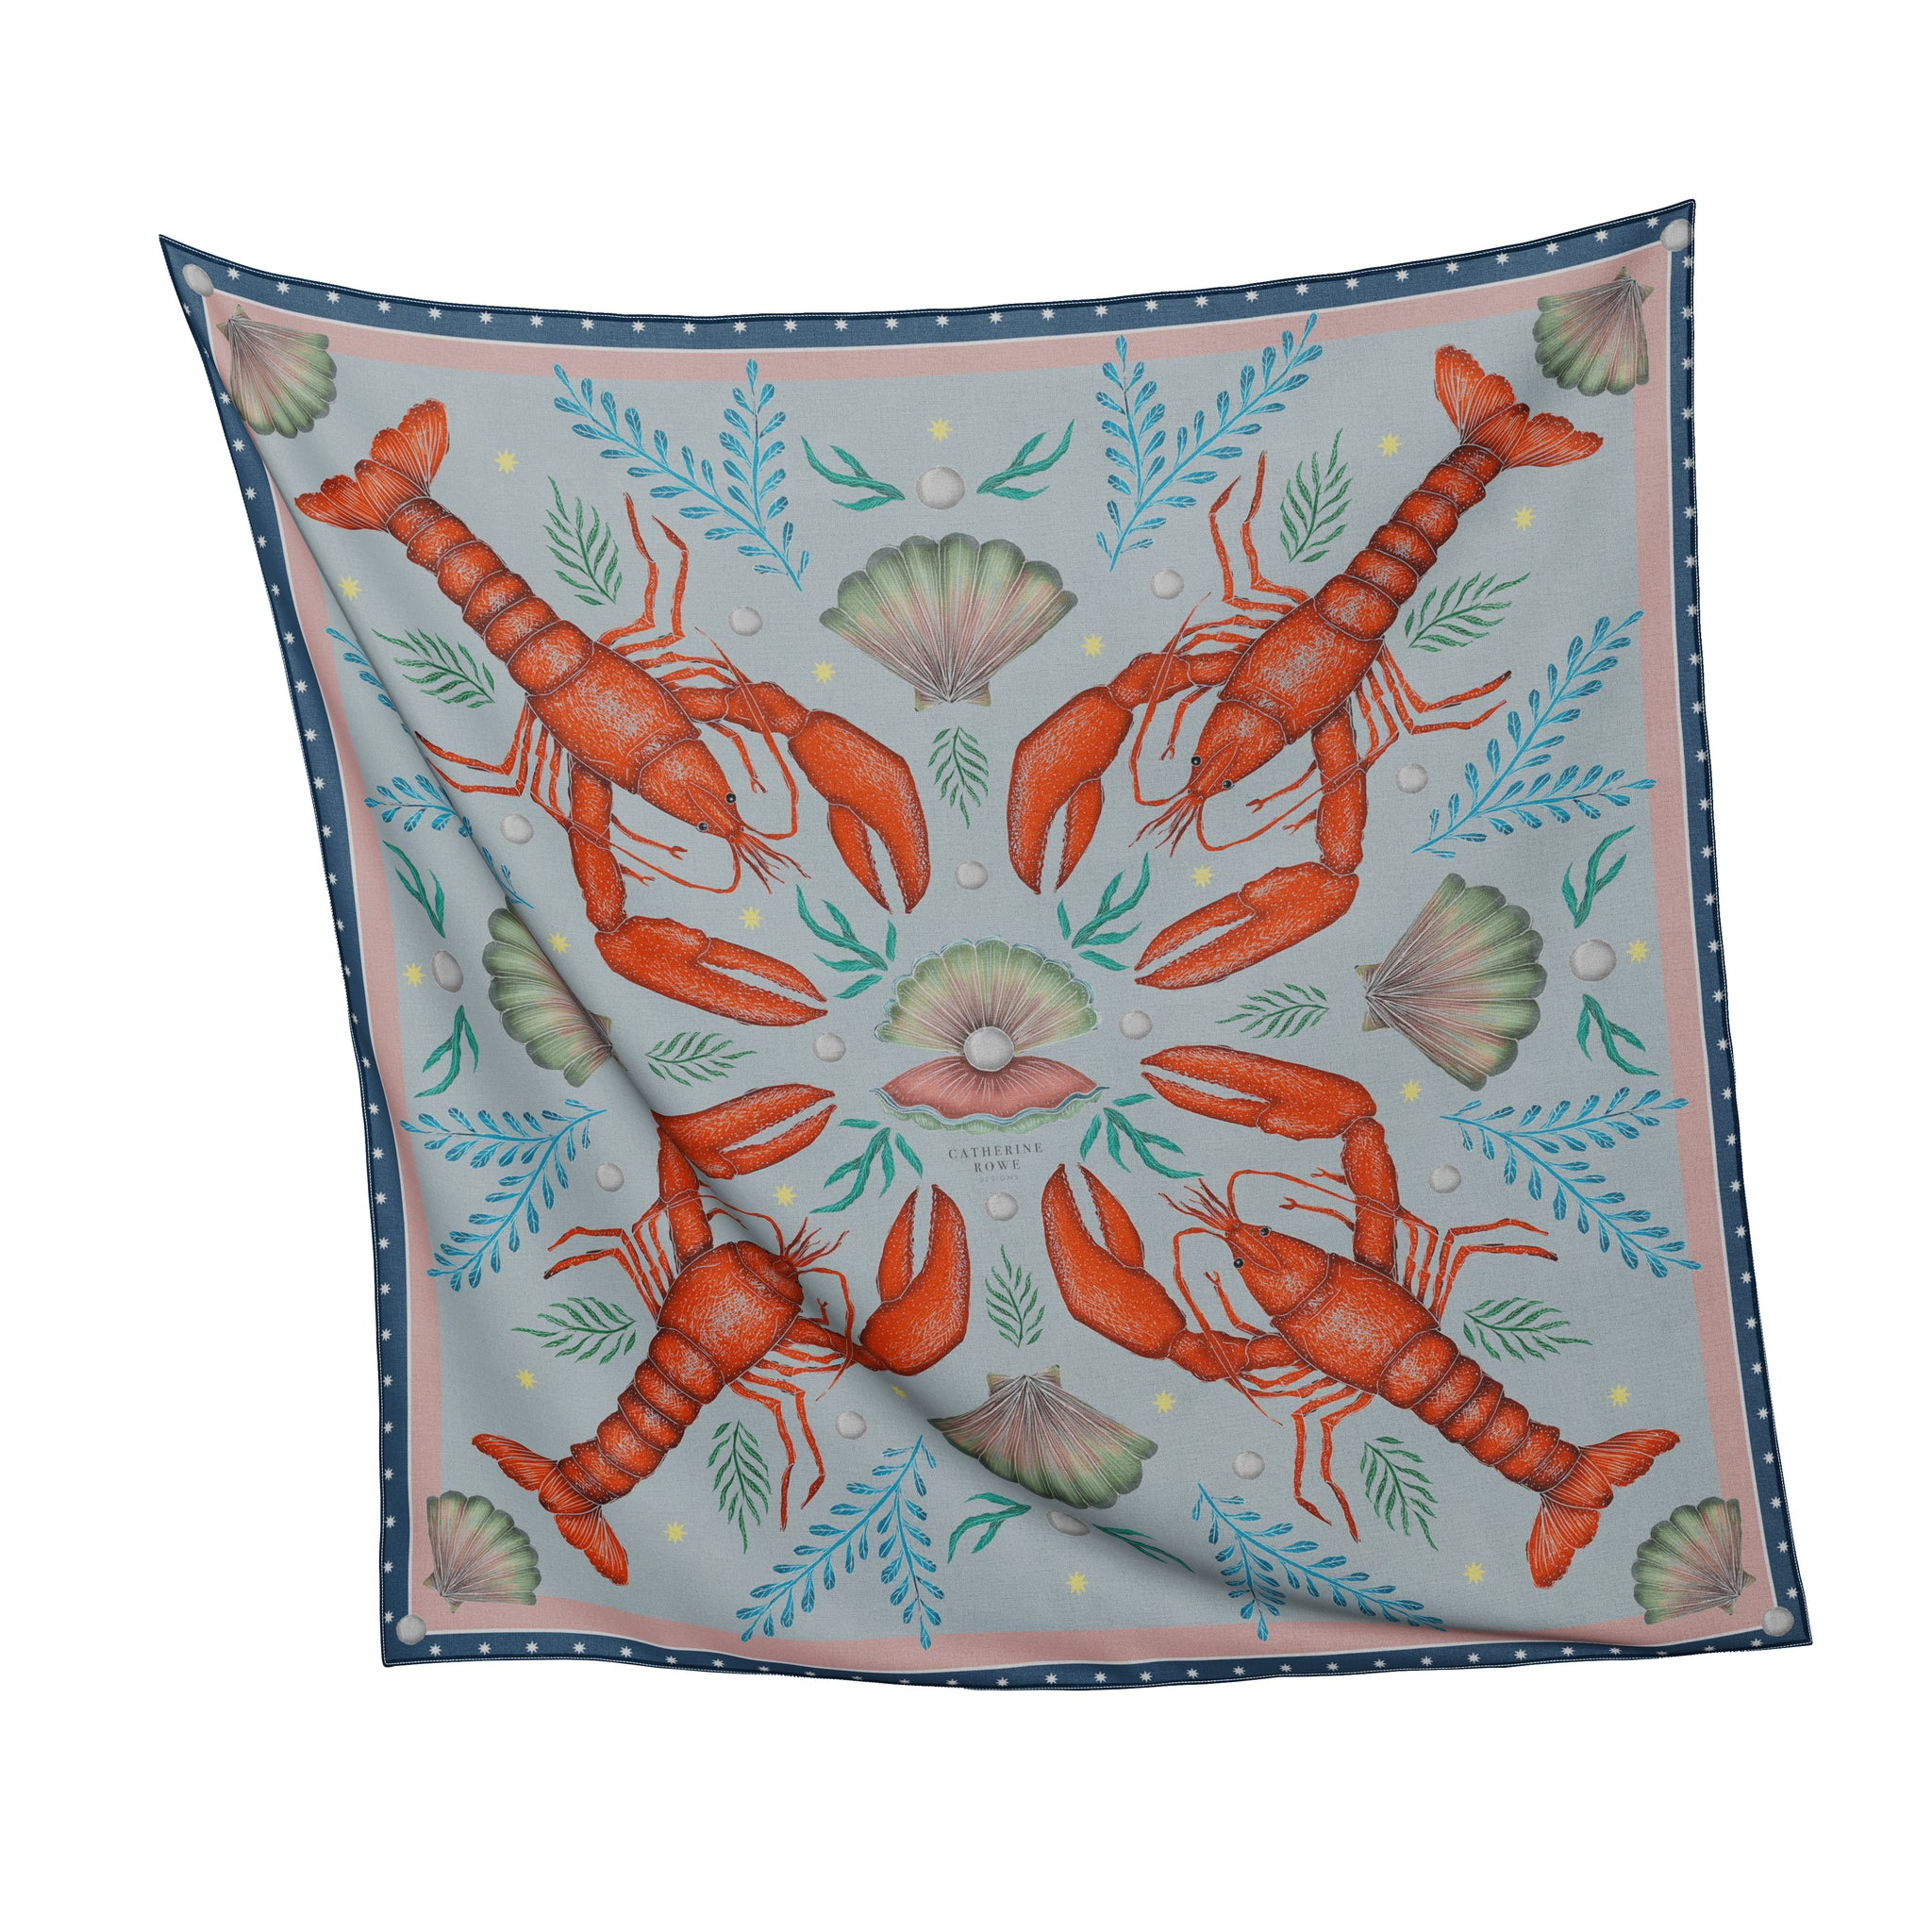 Luxe Lobsters in Aqua Silk Scarf - Available in 2 Sizes - 100% Silk or Vegan Faux Silk - Handmade to Order in London